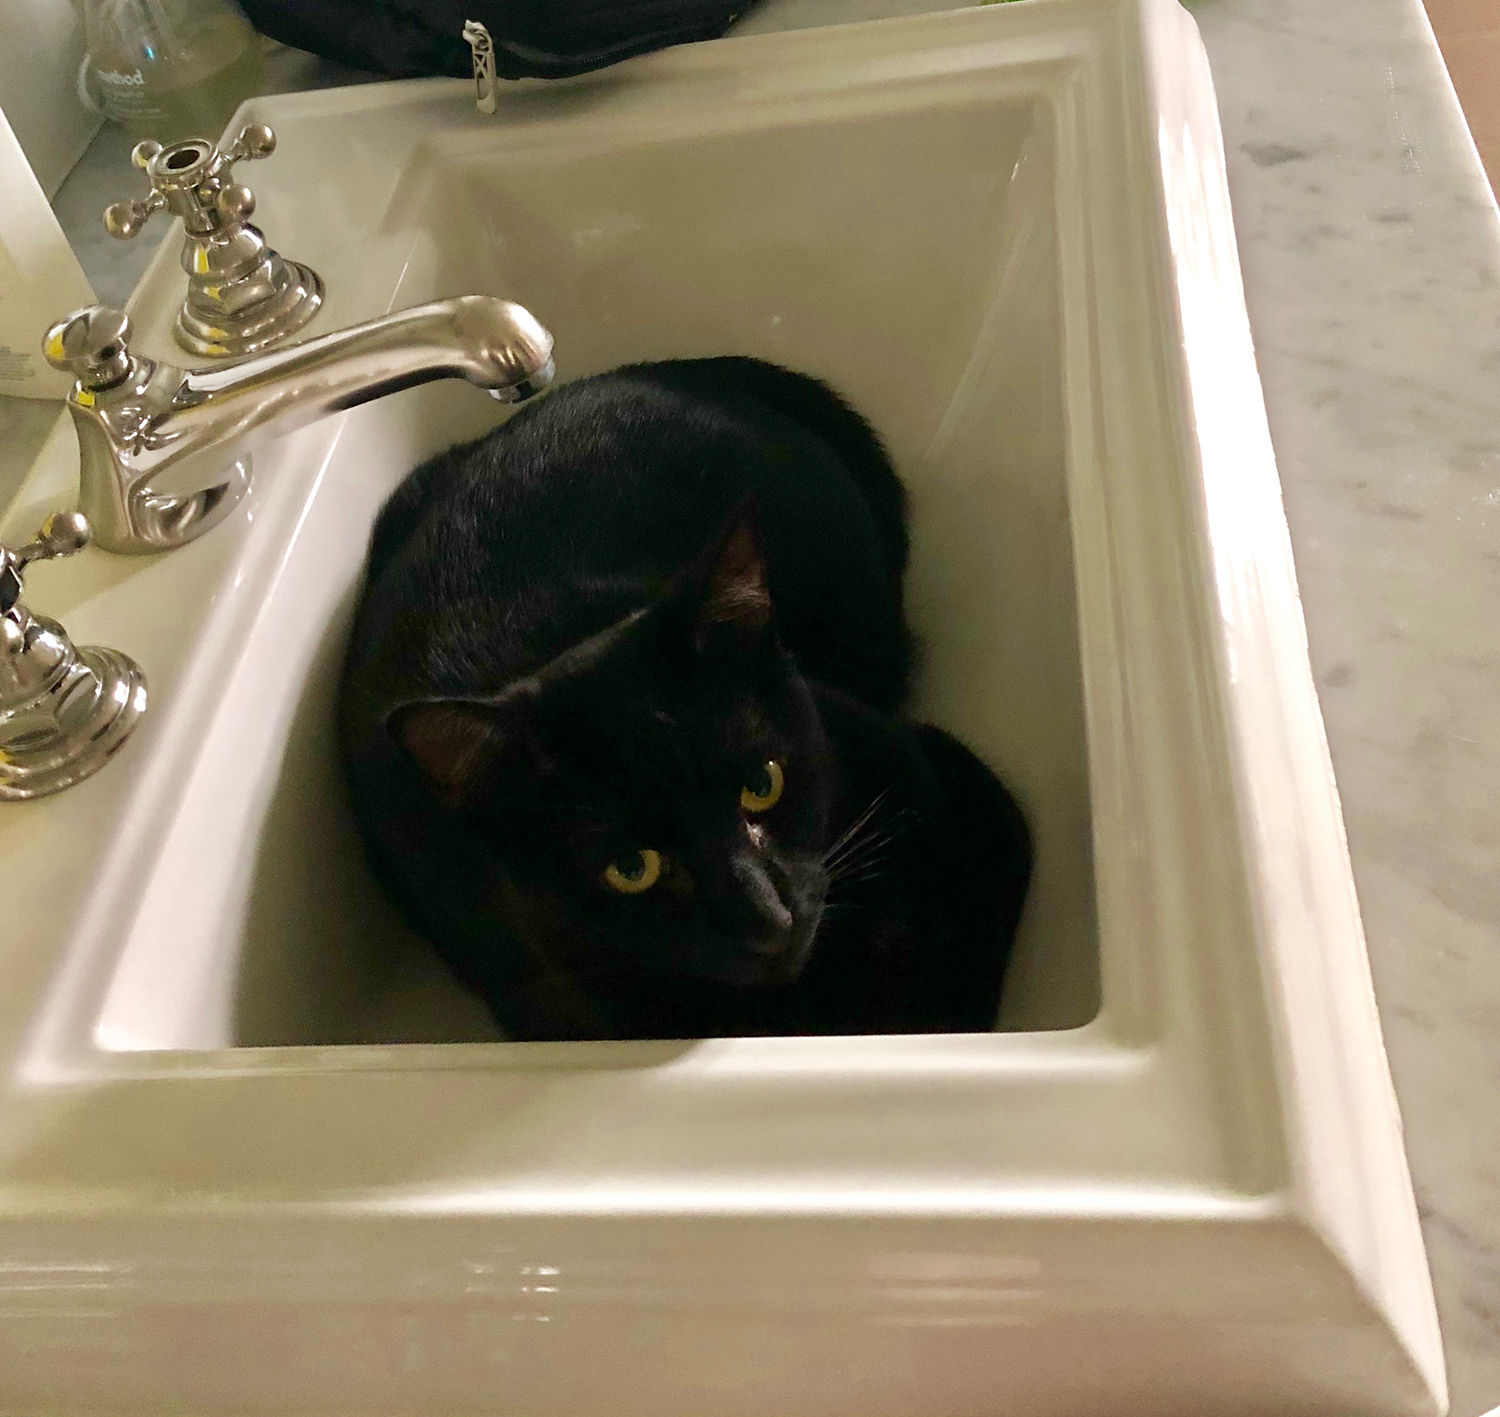 A black cat named Tito, owned by a family friend of Zoe Bush '22, lays in a sink. Black cats are unfairly associated with witchcraft around the time of Halloween.